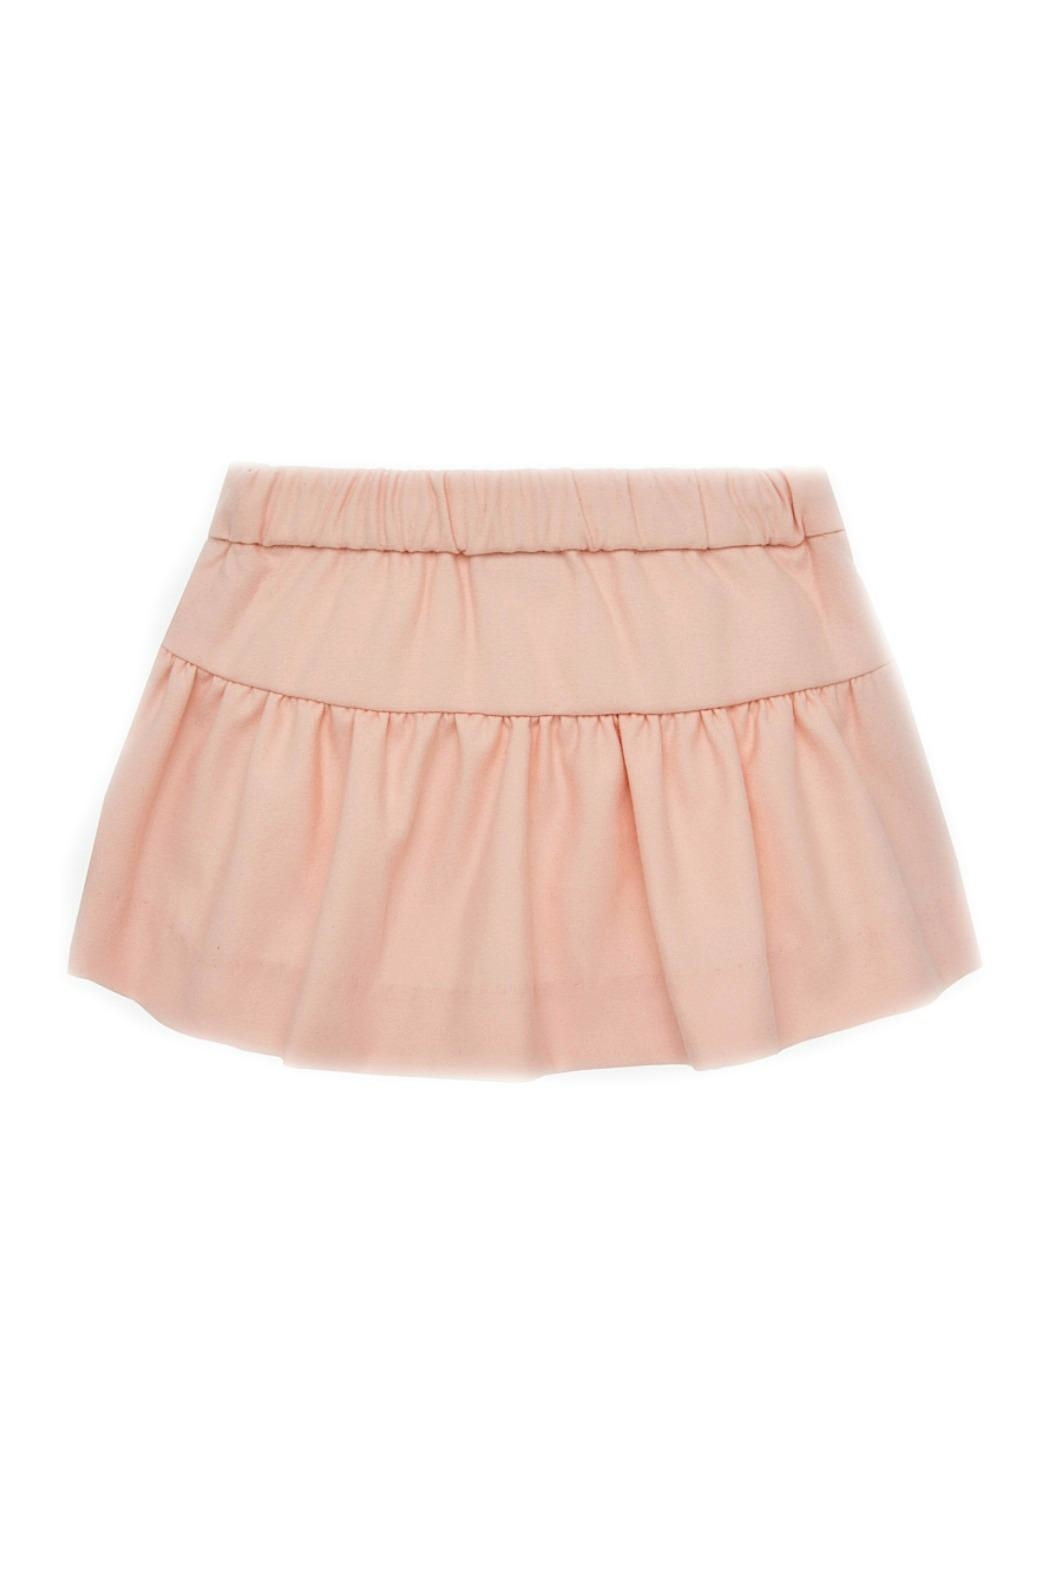 Mayoral Baby-Girl A-Line Skirt - Side Cropped Image